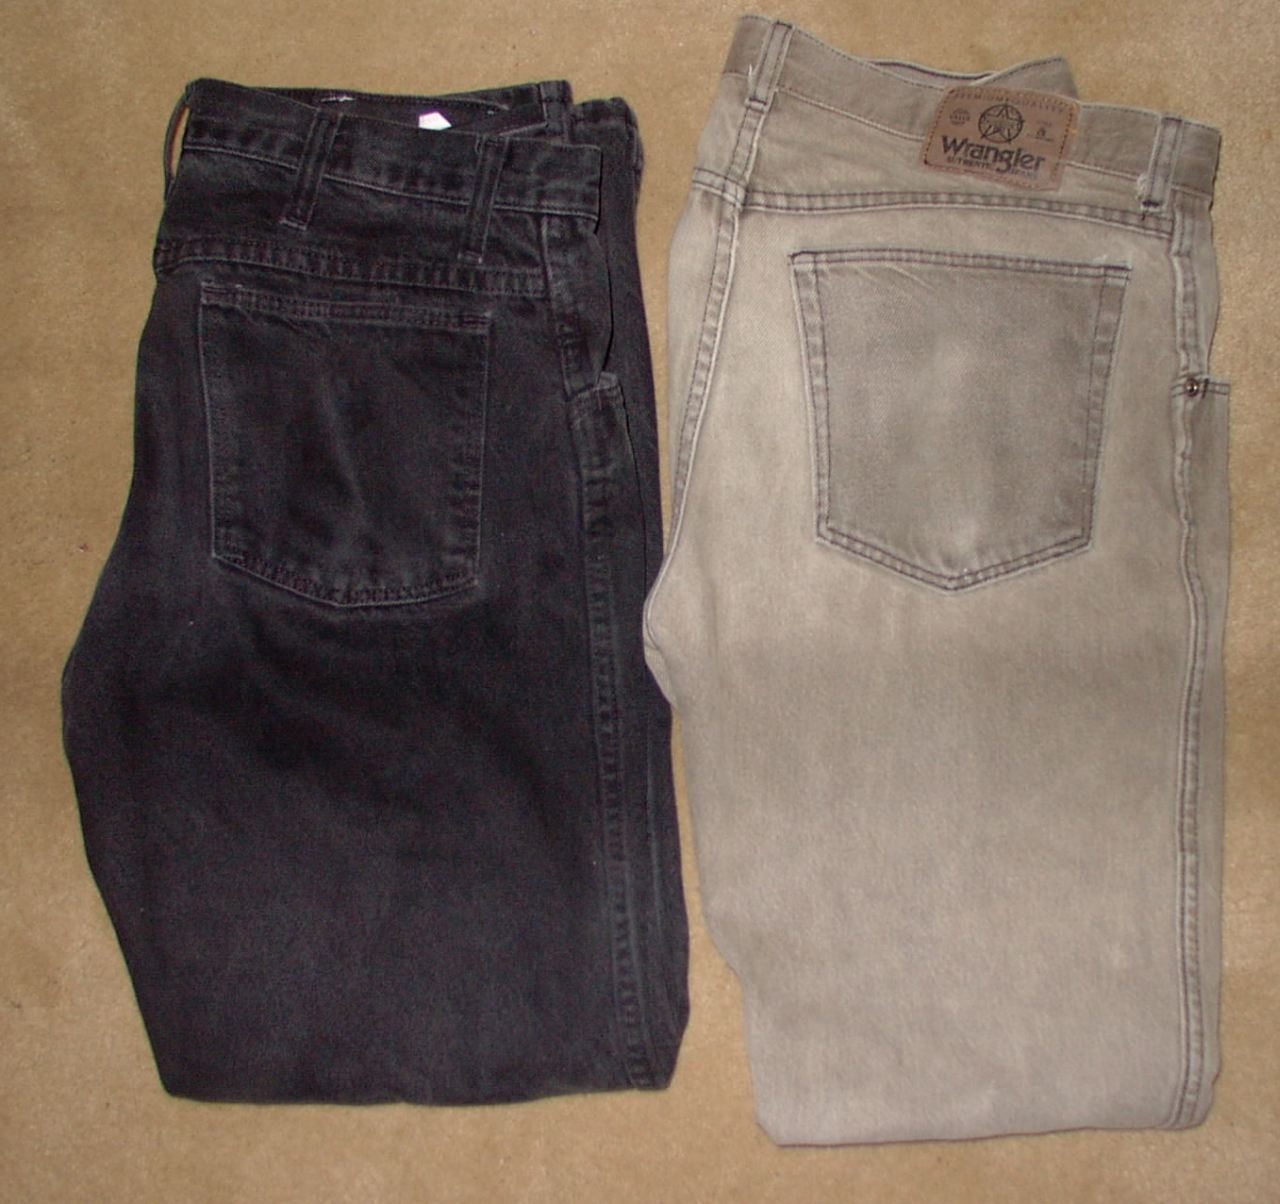 Bleaching and Re-coloring Wrangler Jeans